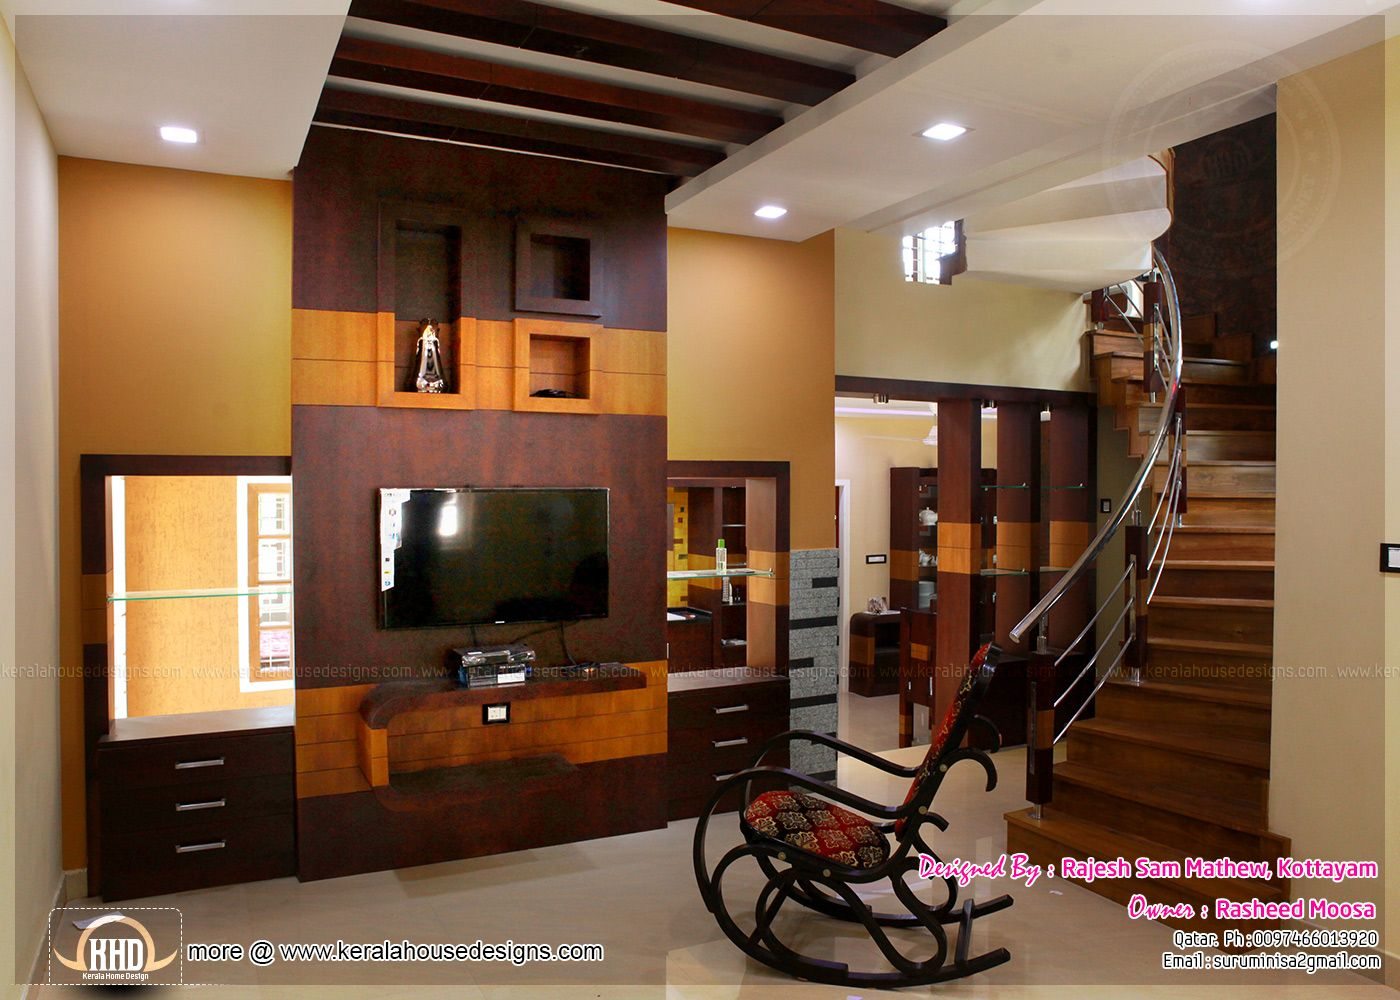 Kerala Model Houses Interior